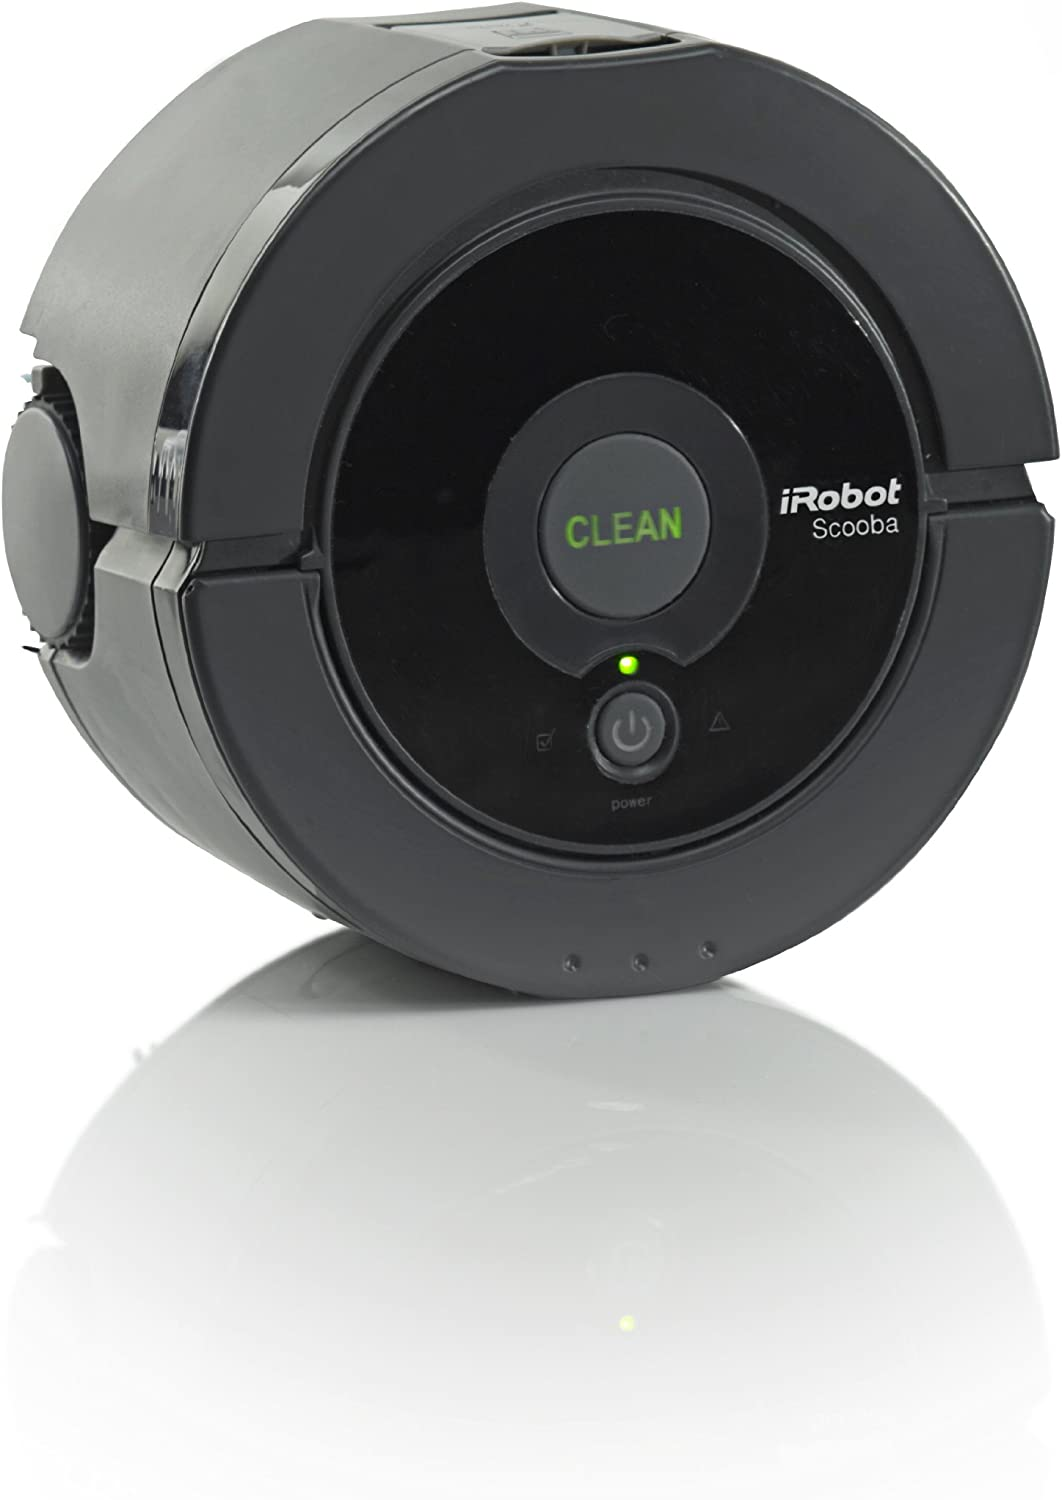 iRobot Scooba 230 - Robot friegasuelos: Amazon.es: Hogar